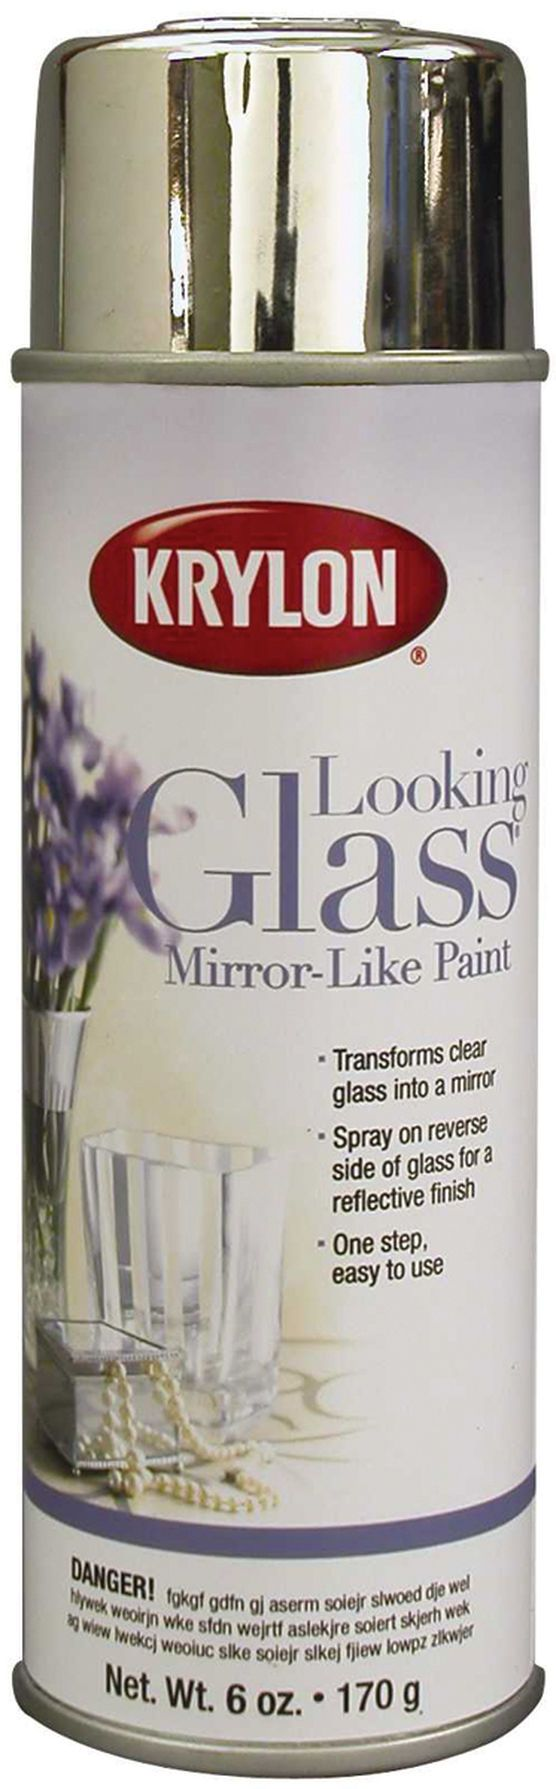 Looking Glass Aerosol Spray Paint 6oz- Repair existing mirror edges